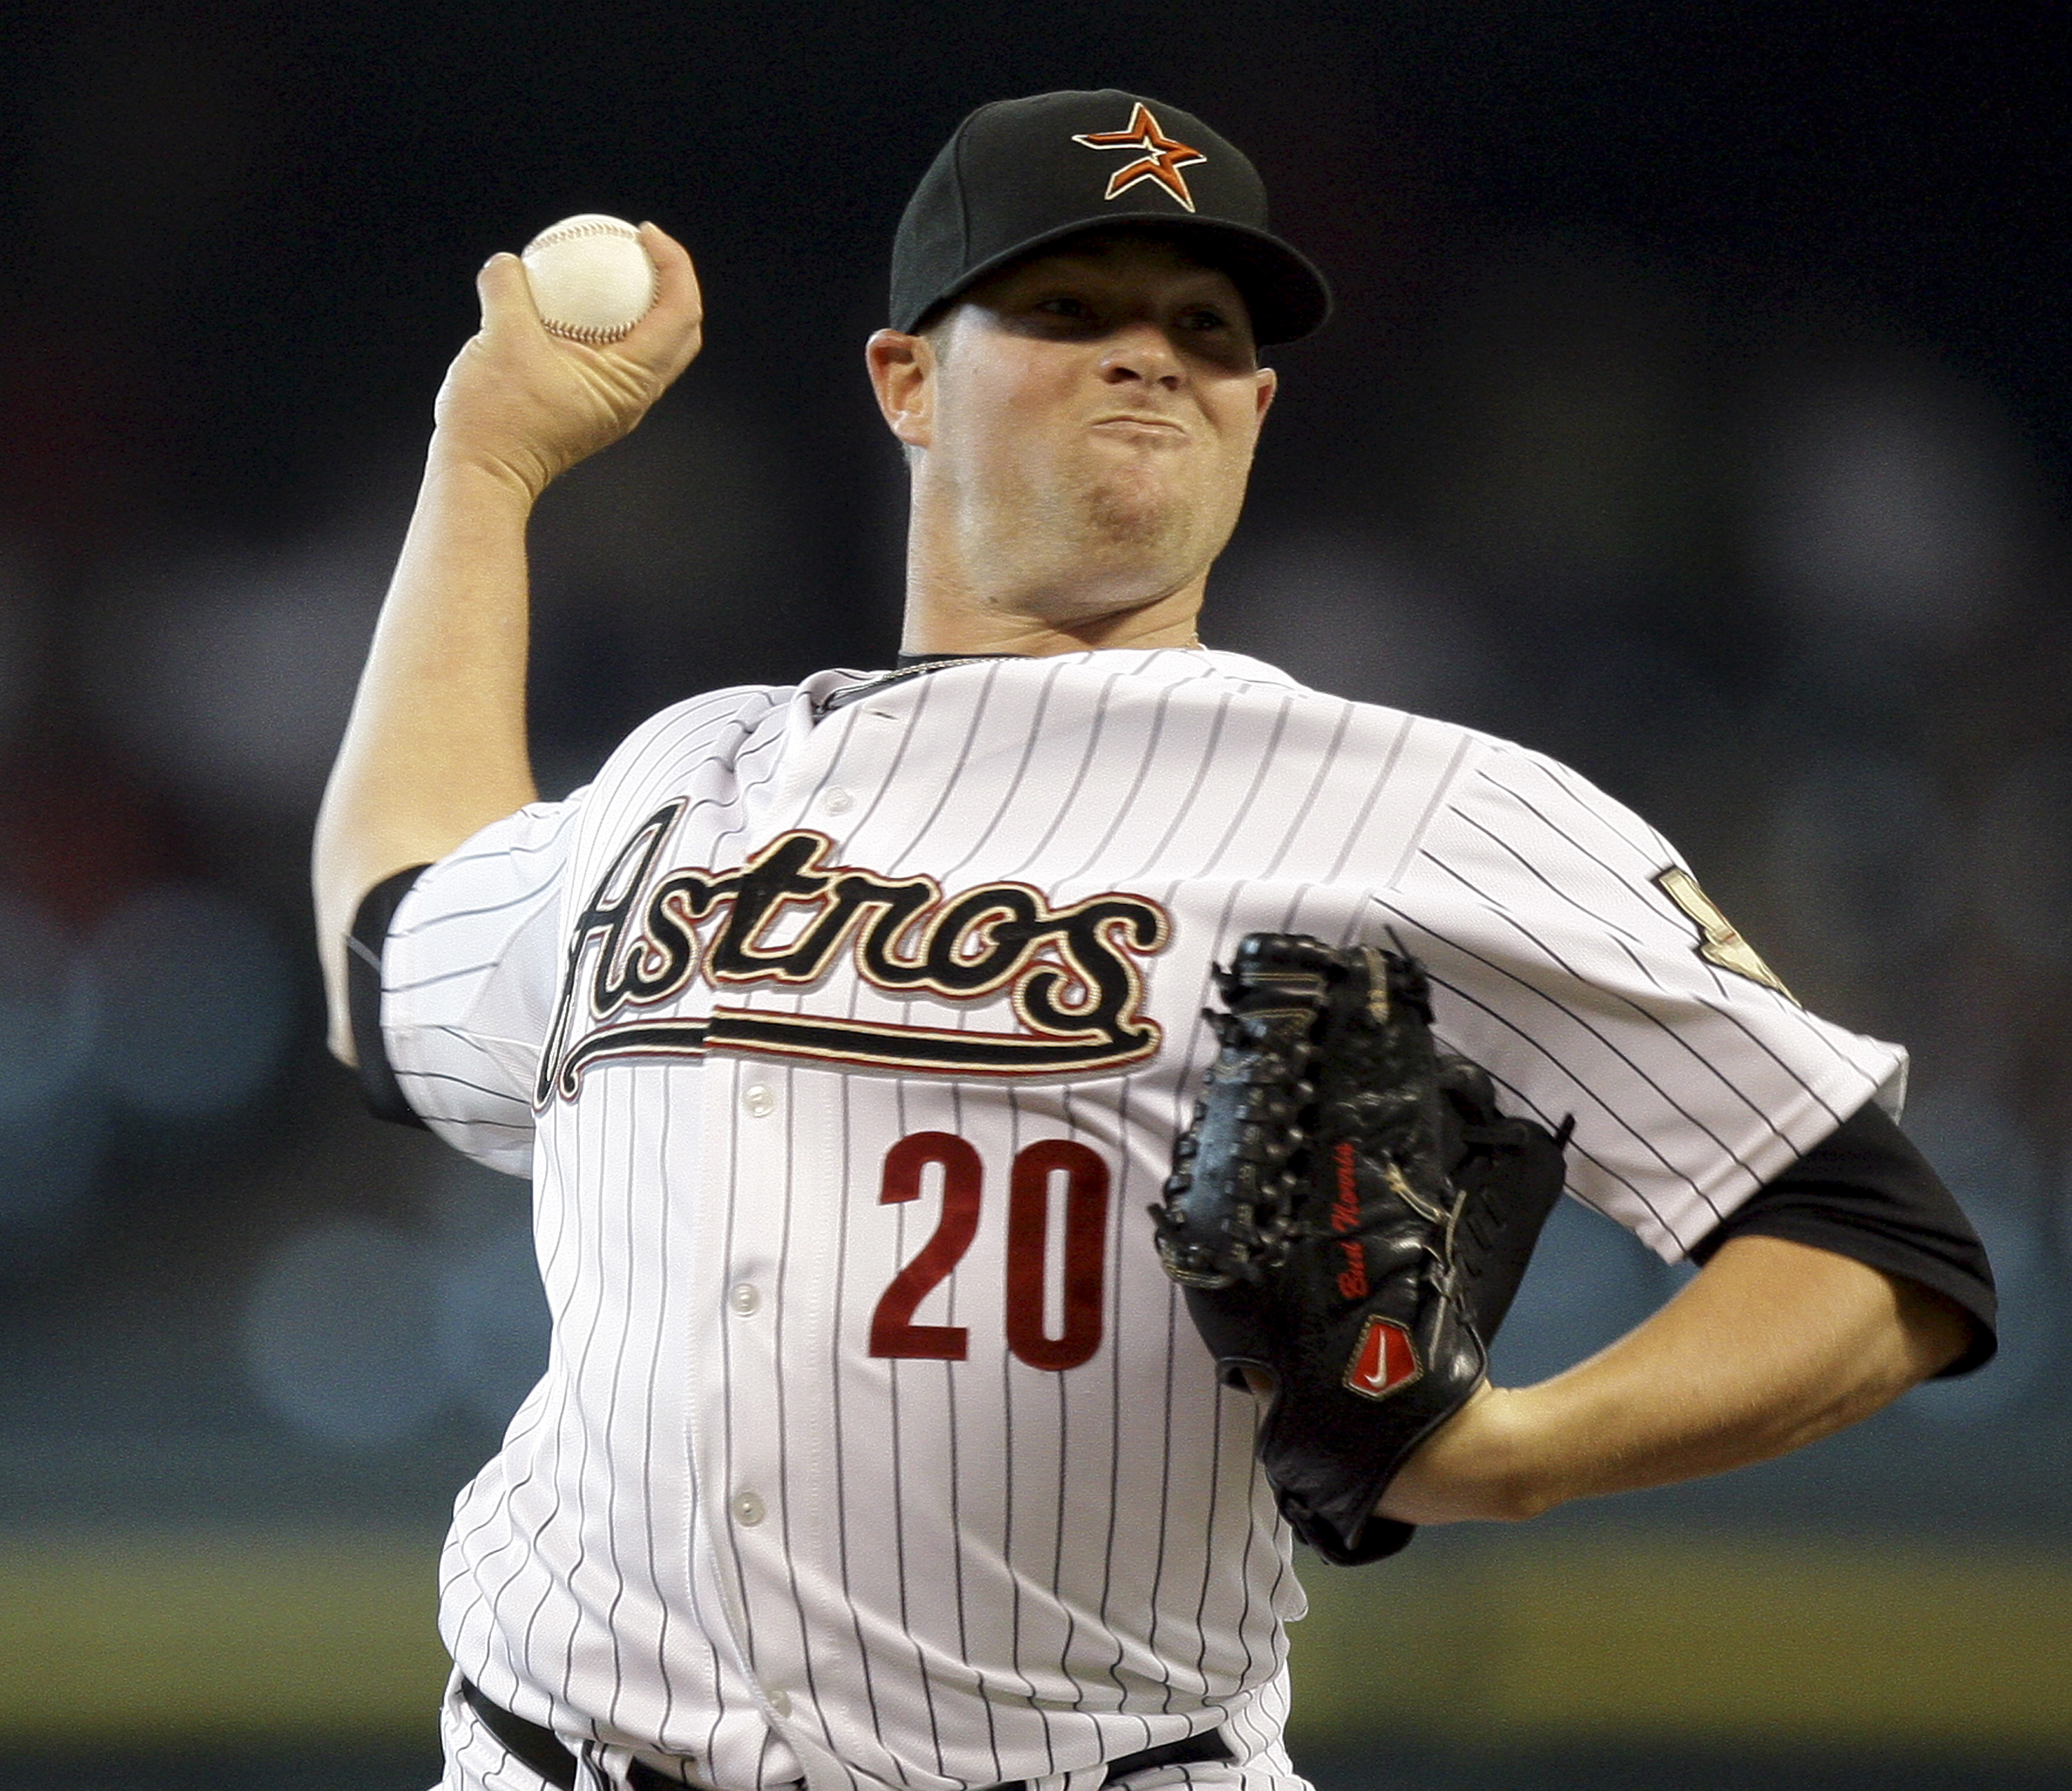 HOUSTON - JUNE 08:  Pitcher Bud Norris #20 of the Houston Astros throws against the St. Louis Cardibnals at Minute Maid Park on June 8, 2011 in Houston, Texas.  (Photo by Bob Levey/Getty Images)